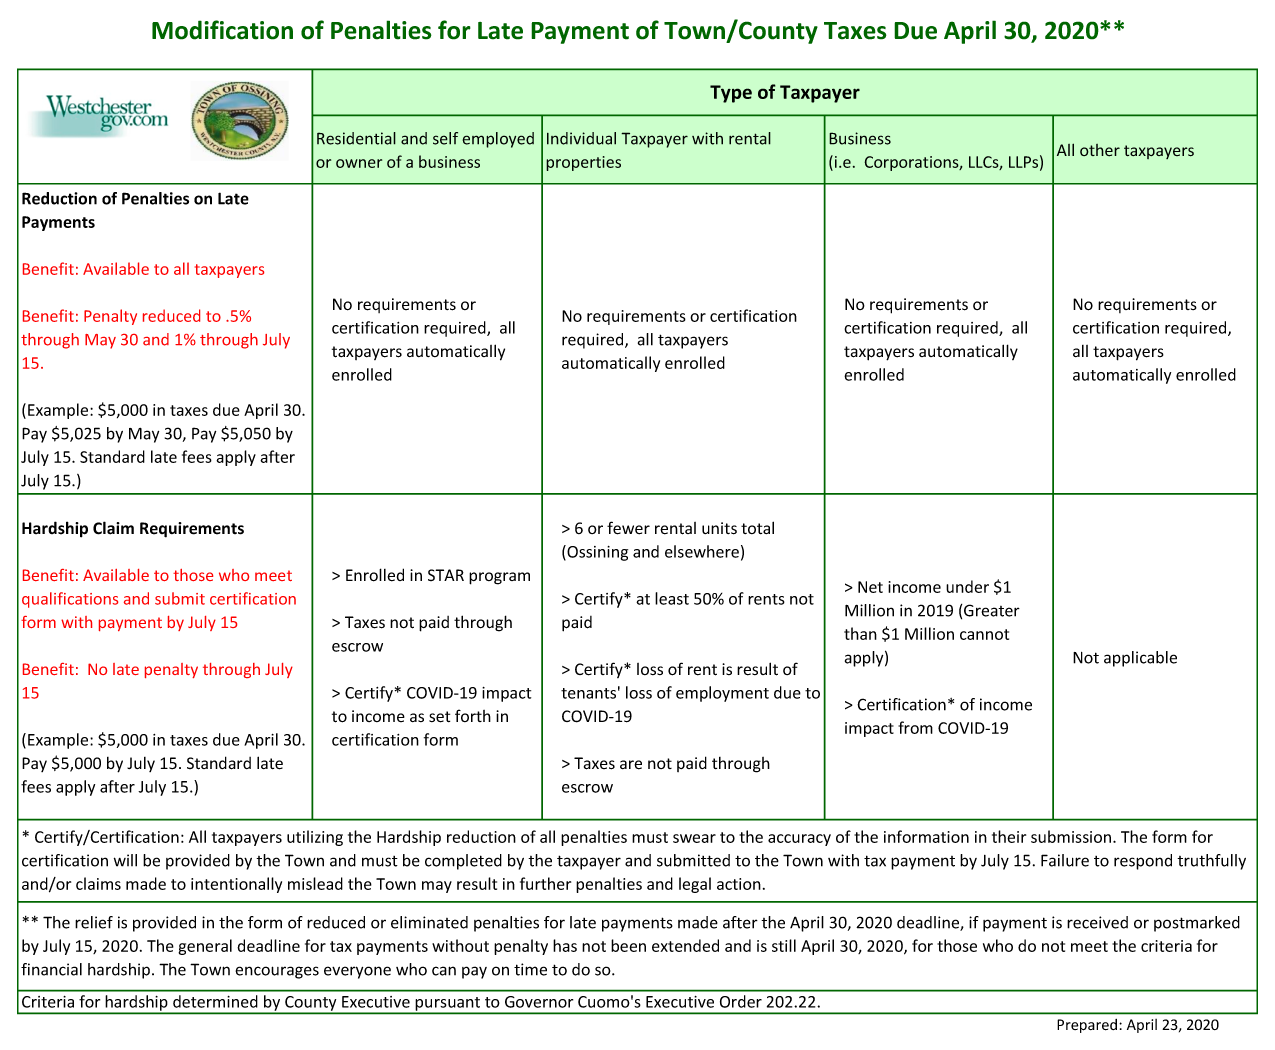 TownCounty Prop Tax Relief 2020 chart